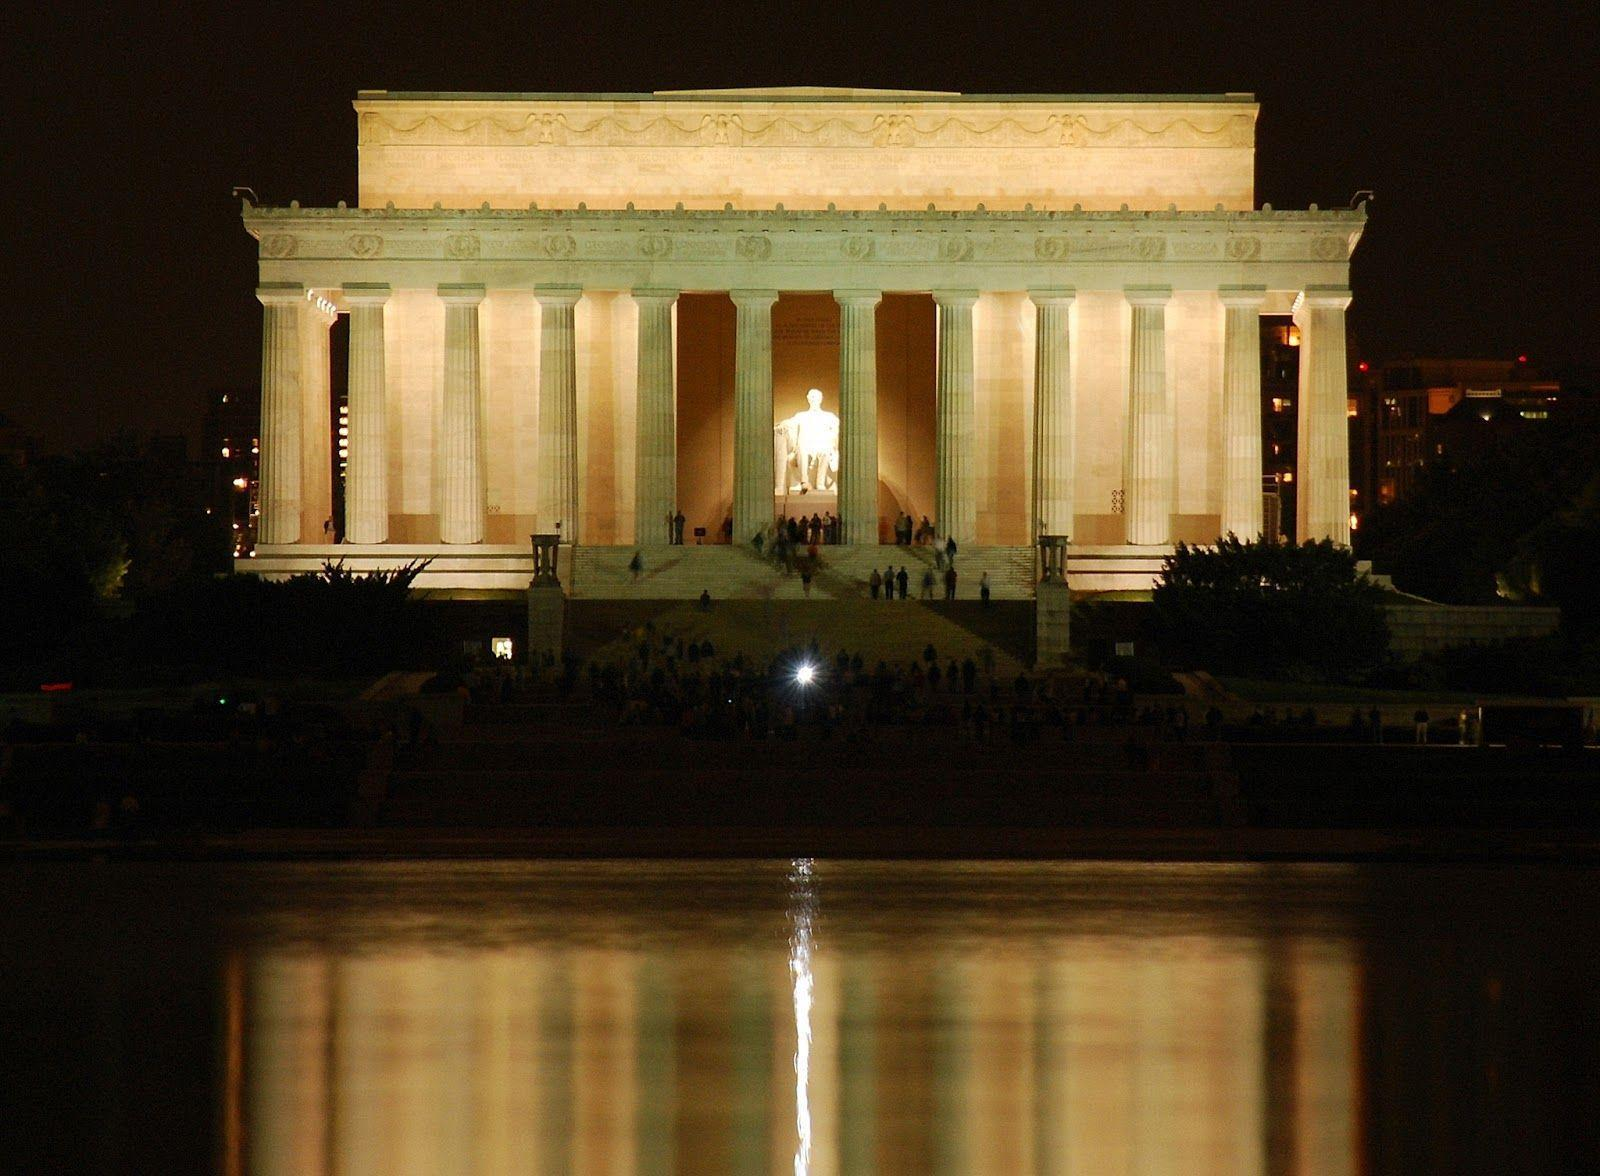 Black Wallpaper: Desktop Wallpaper on National Mall and Memorial ...